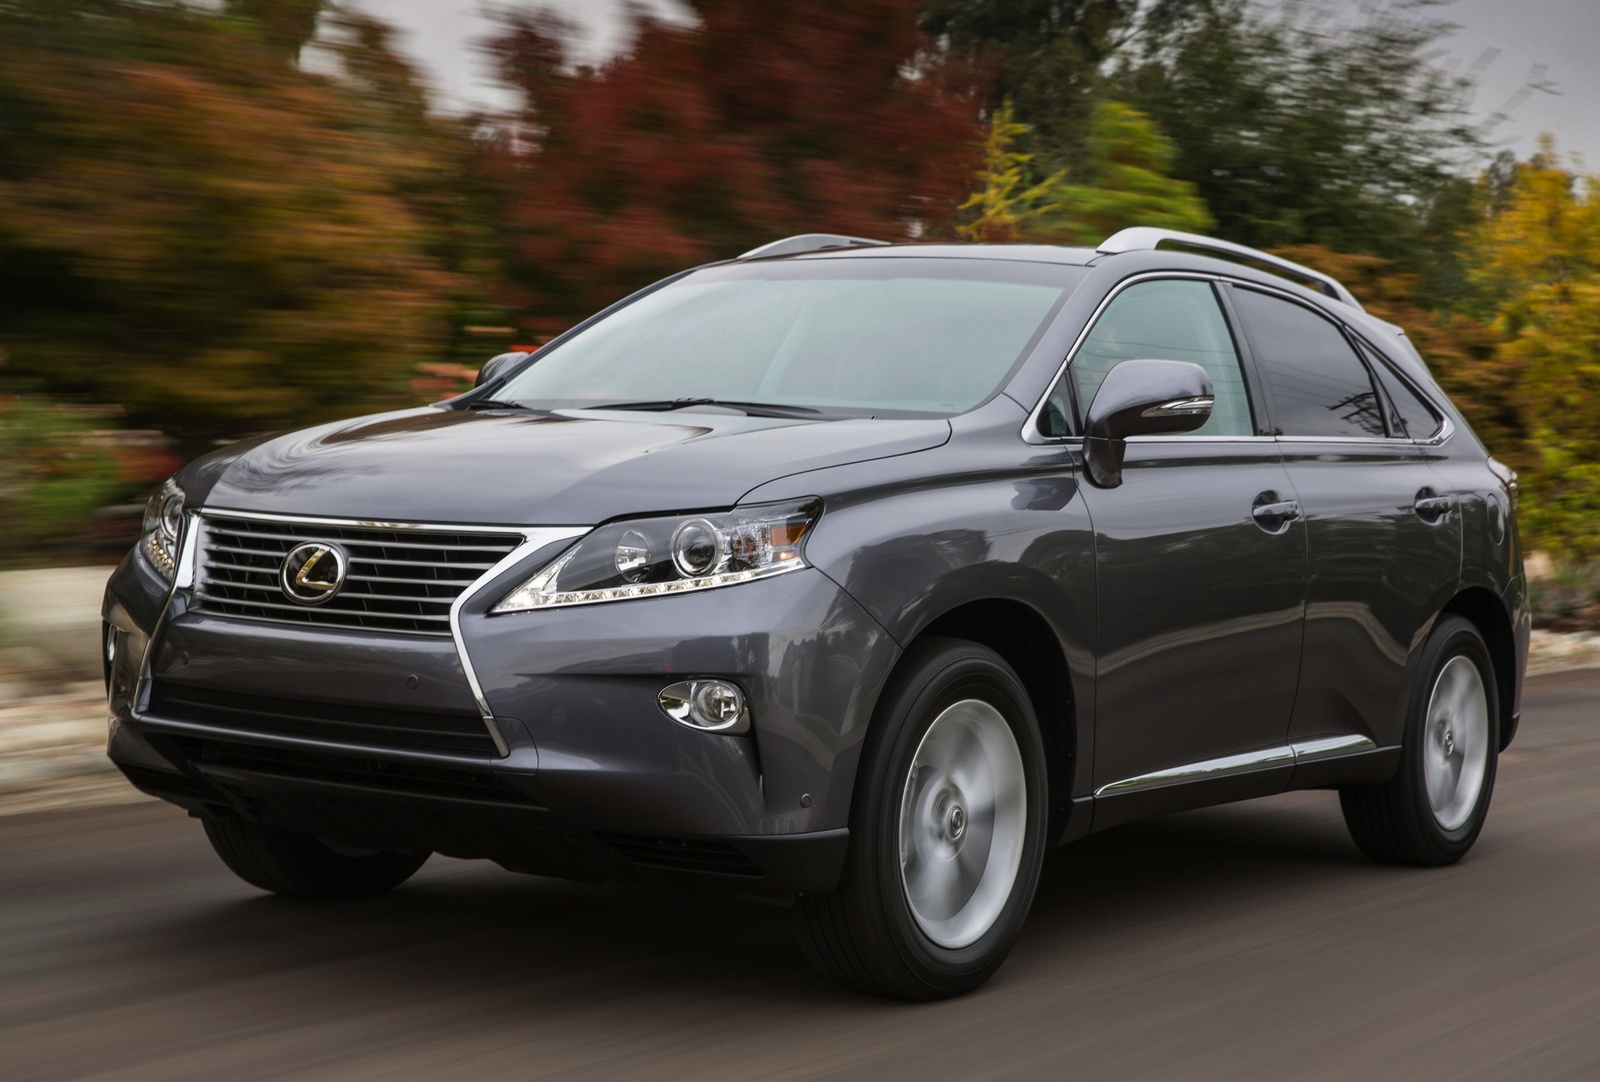 Lexus RX 350 2014 photo - 3